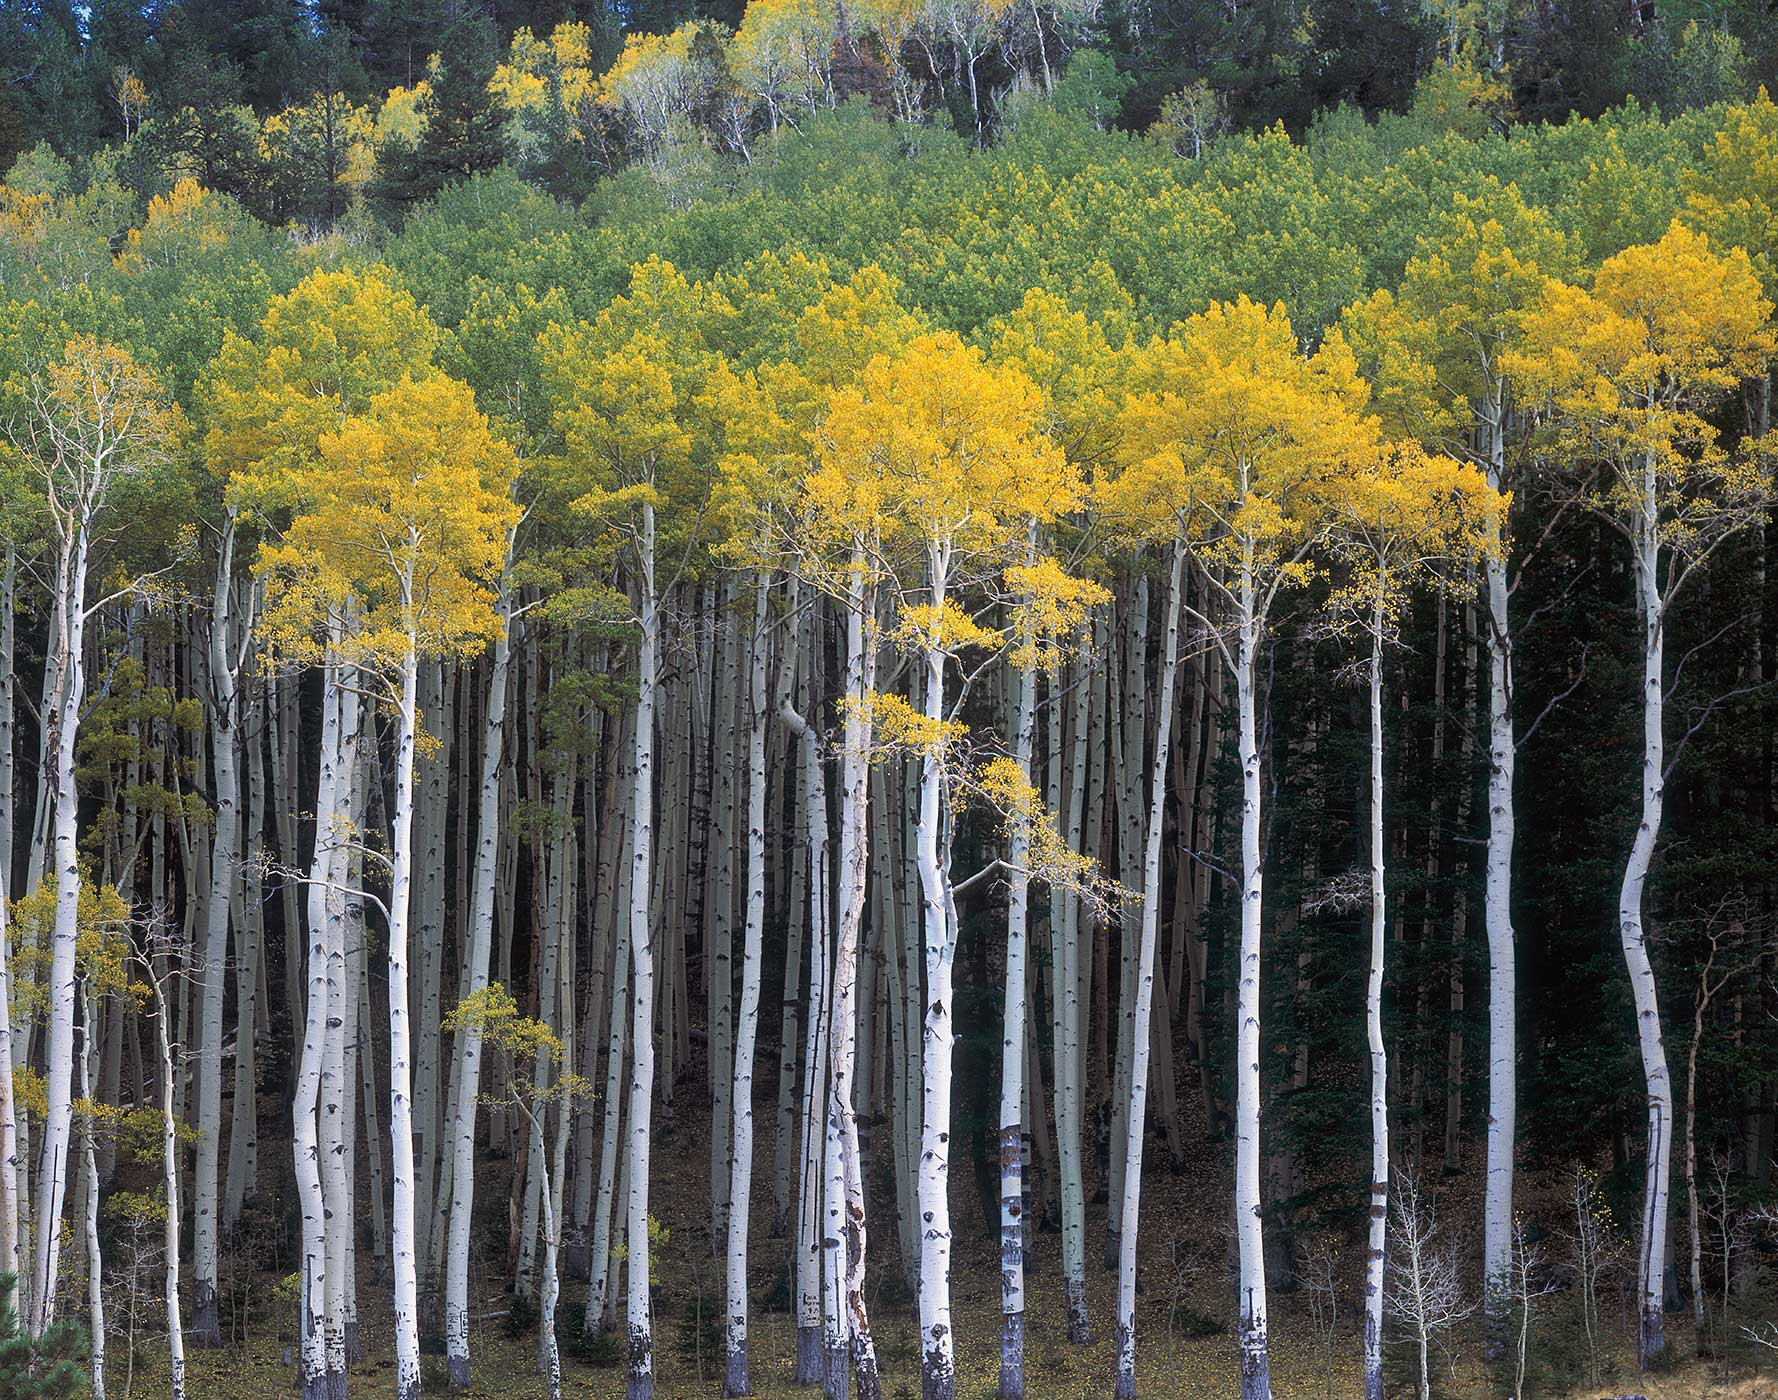 312 Turning Aspens, Coconino National Forest, Arizona